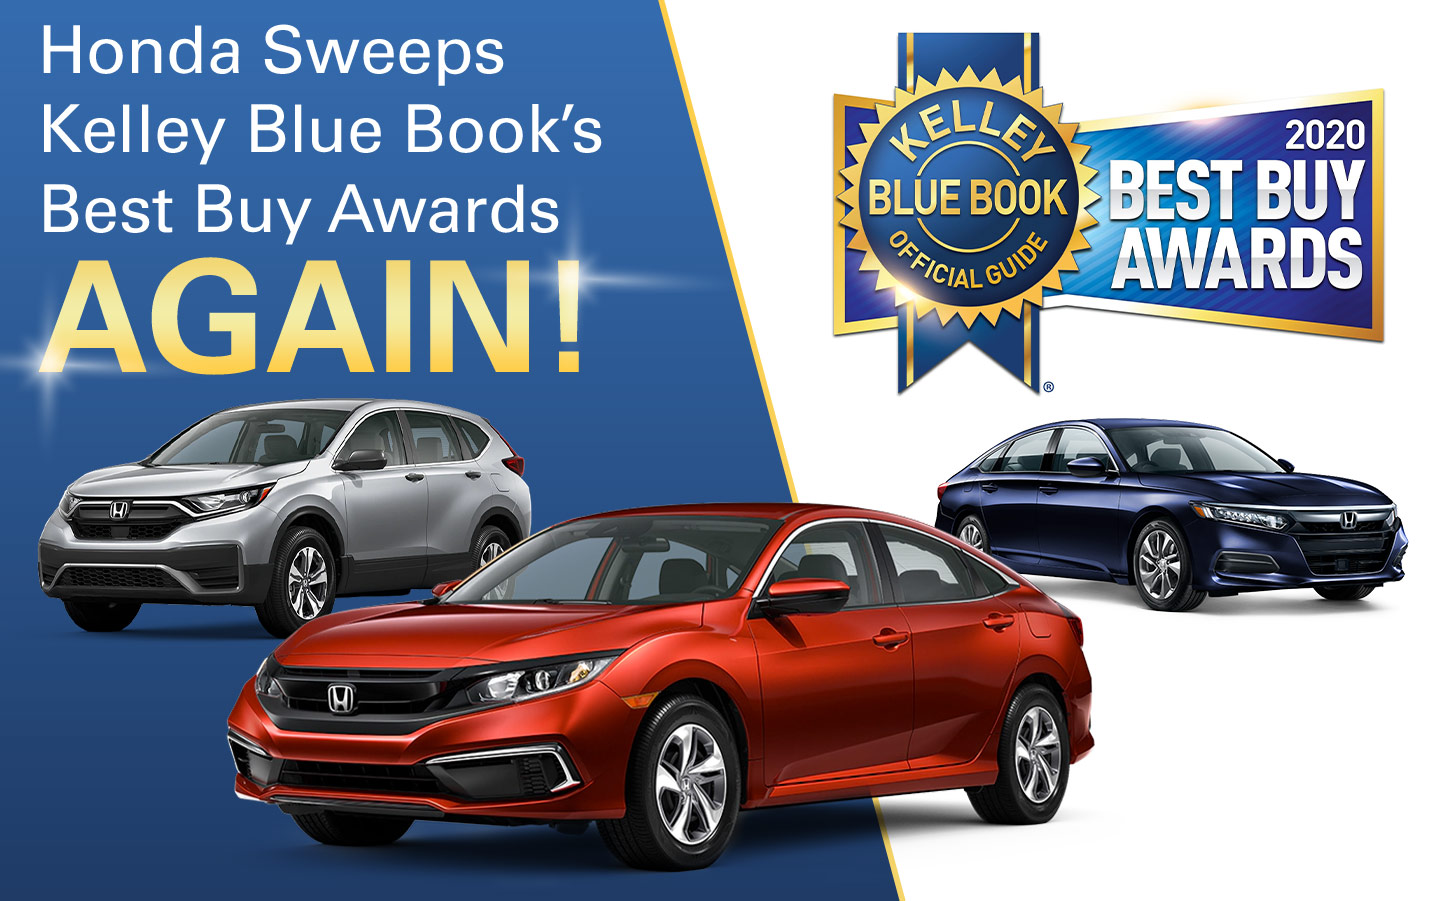 Honda Sweeps Kelly Blue Books Best Buy Awards Again!